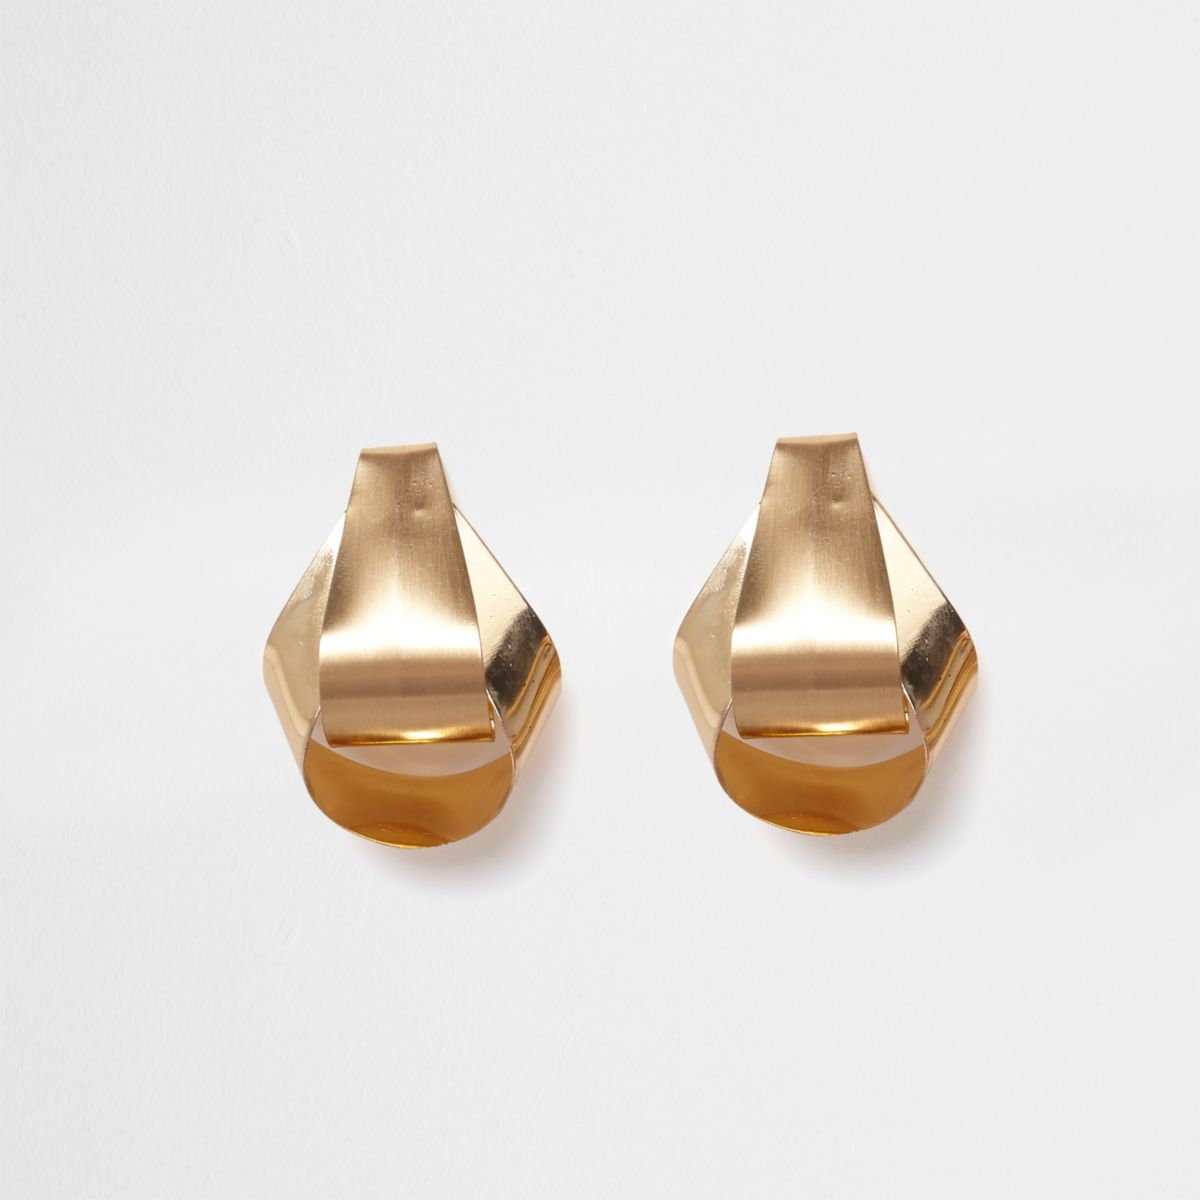 Gold tone folded stud earrings